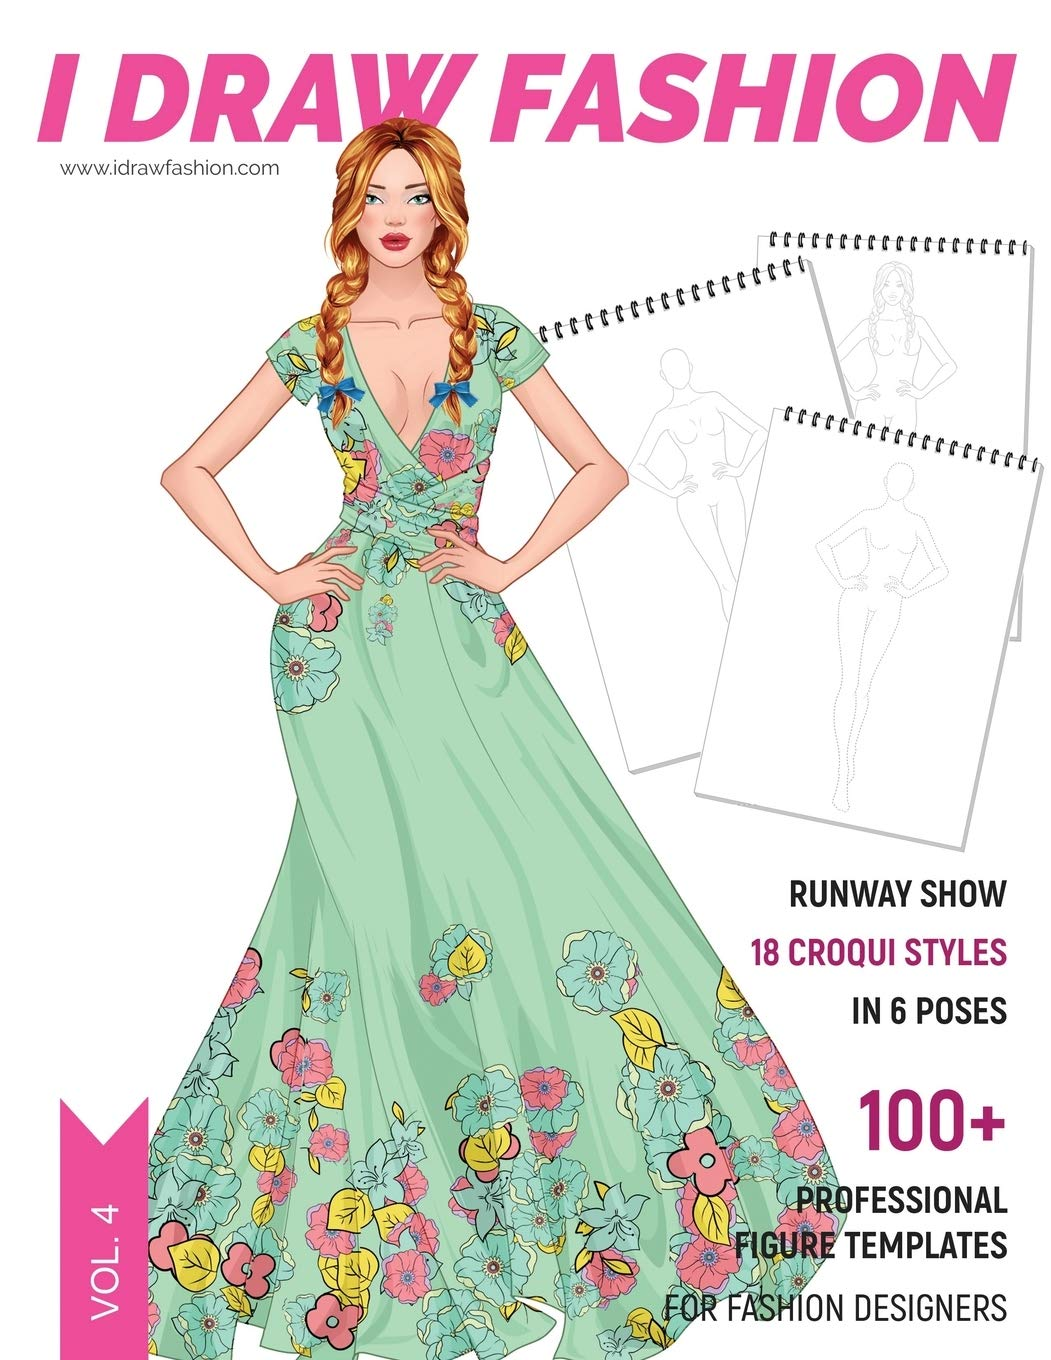 Runway Show 100 Professional Figure Templates For Fashion Designers Fashion Sketchpad With 18 Croqui Styles In 6 Poses Fashion I Draw 9781688678200 Amazon Com Books